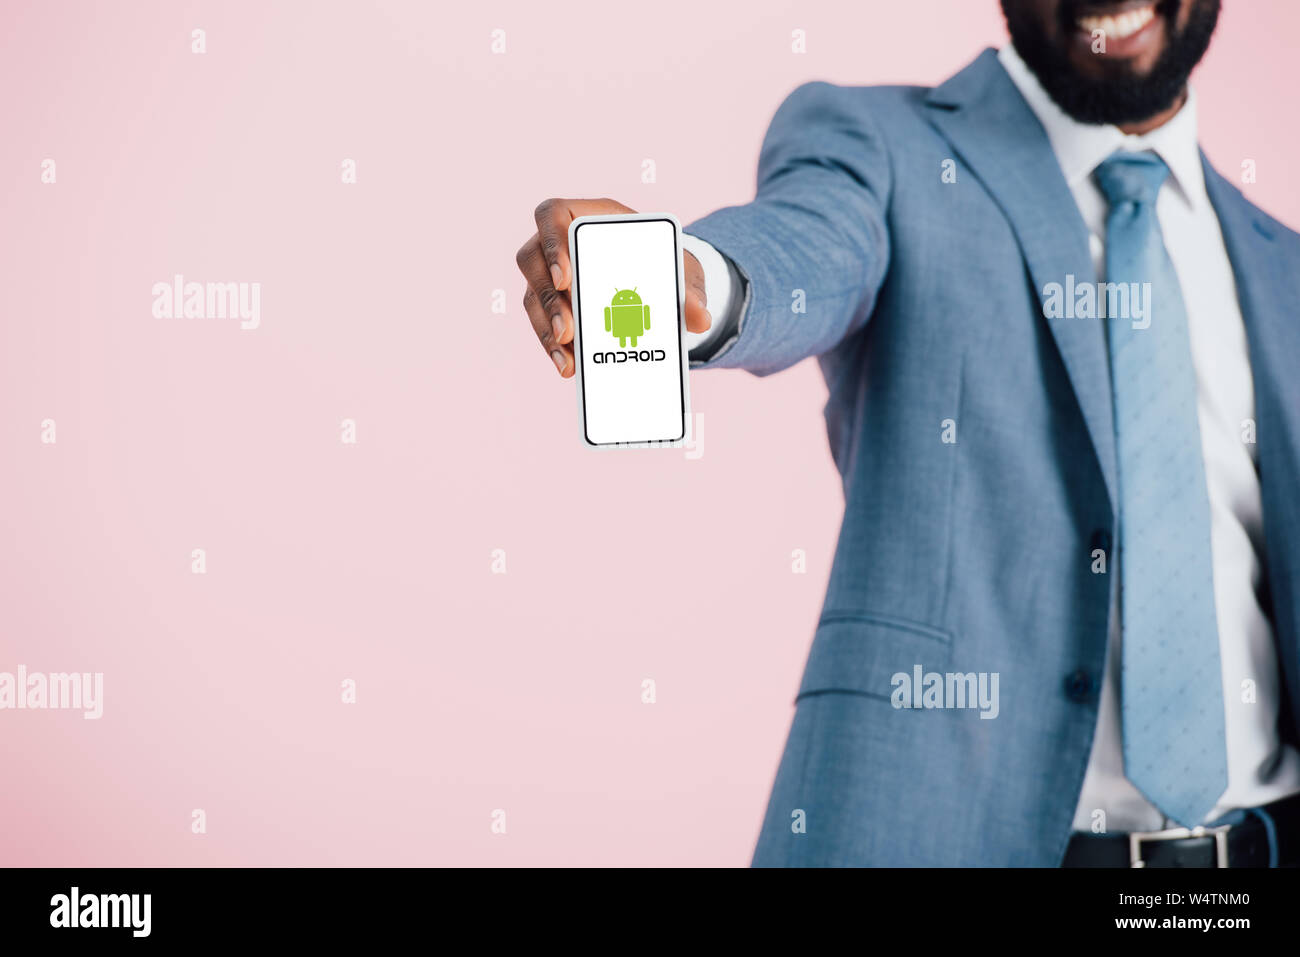 Android Device Manager Stock Photos & Android Device Manager